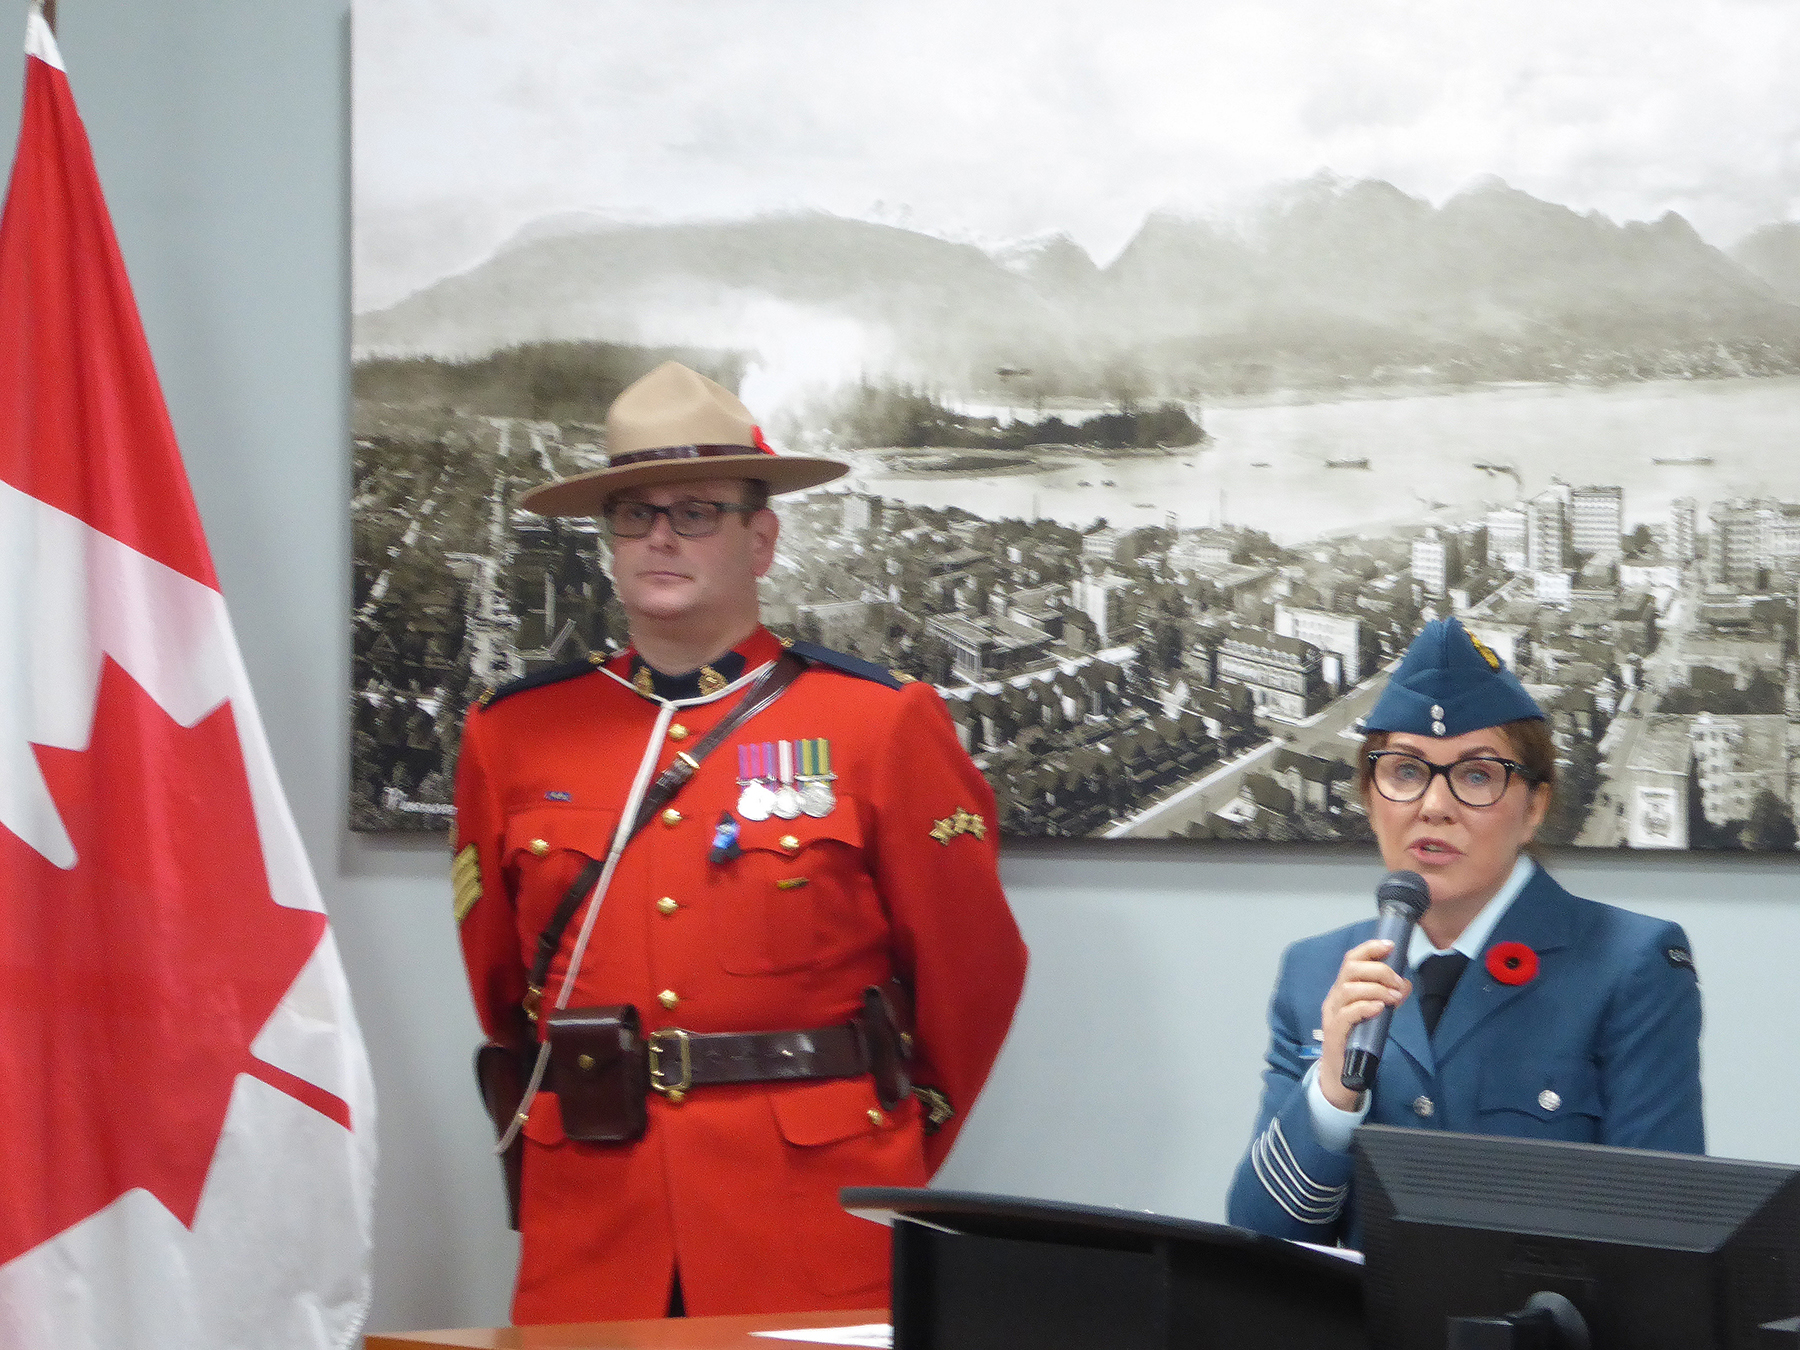 Overseen by Sergeant Chad Greig of the Royal Canadian Mounted Police, Honorary Colonel Diane McCurdy, of 442 Transport and Rescue Squadron, addresses new citizens and attendees during one of two November 7, 2017, remembrance-themed citizenship ceremonies held in Surrey, British Columbia. PHOTO: Submitted